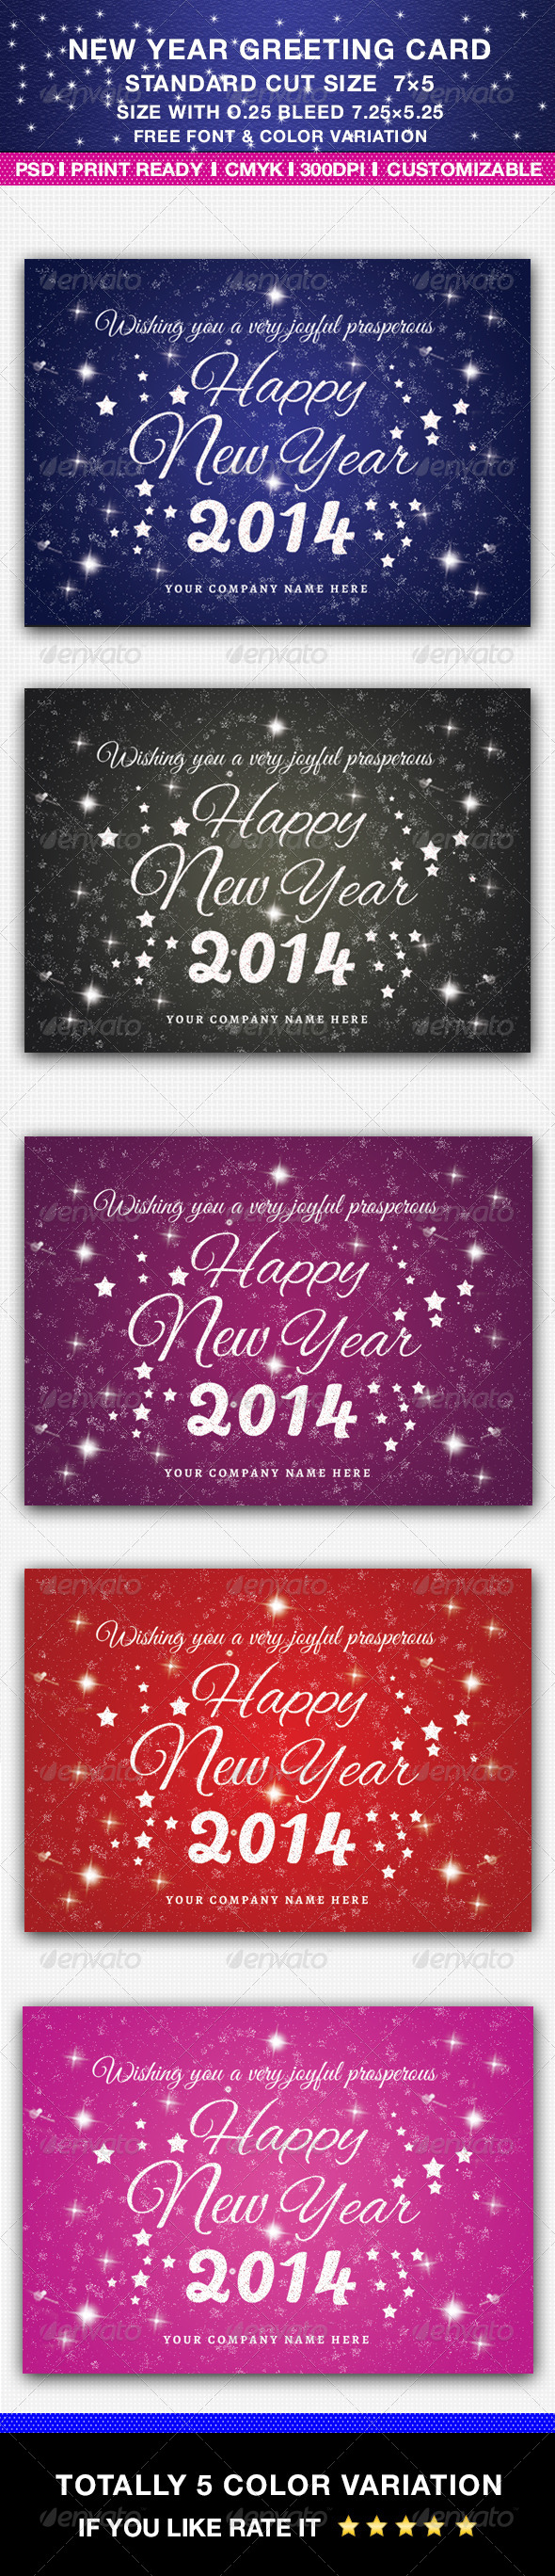 GraphicRiver New Year Greeting Card 6391166